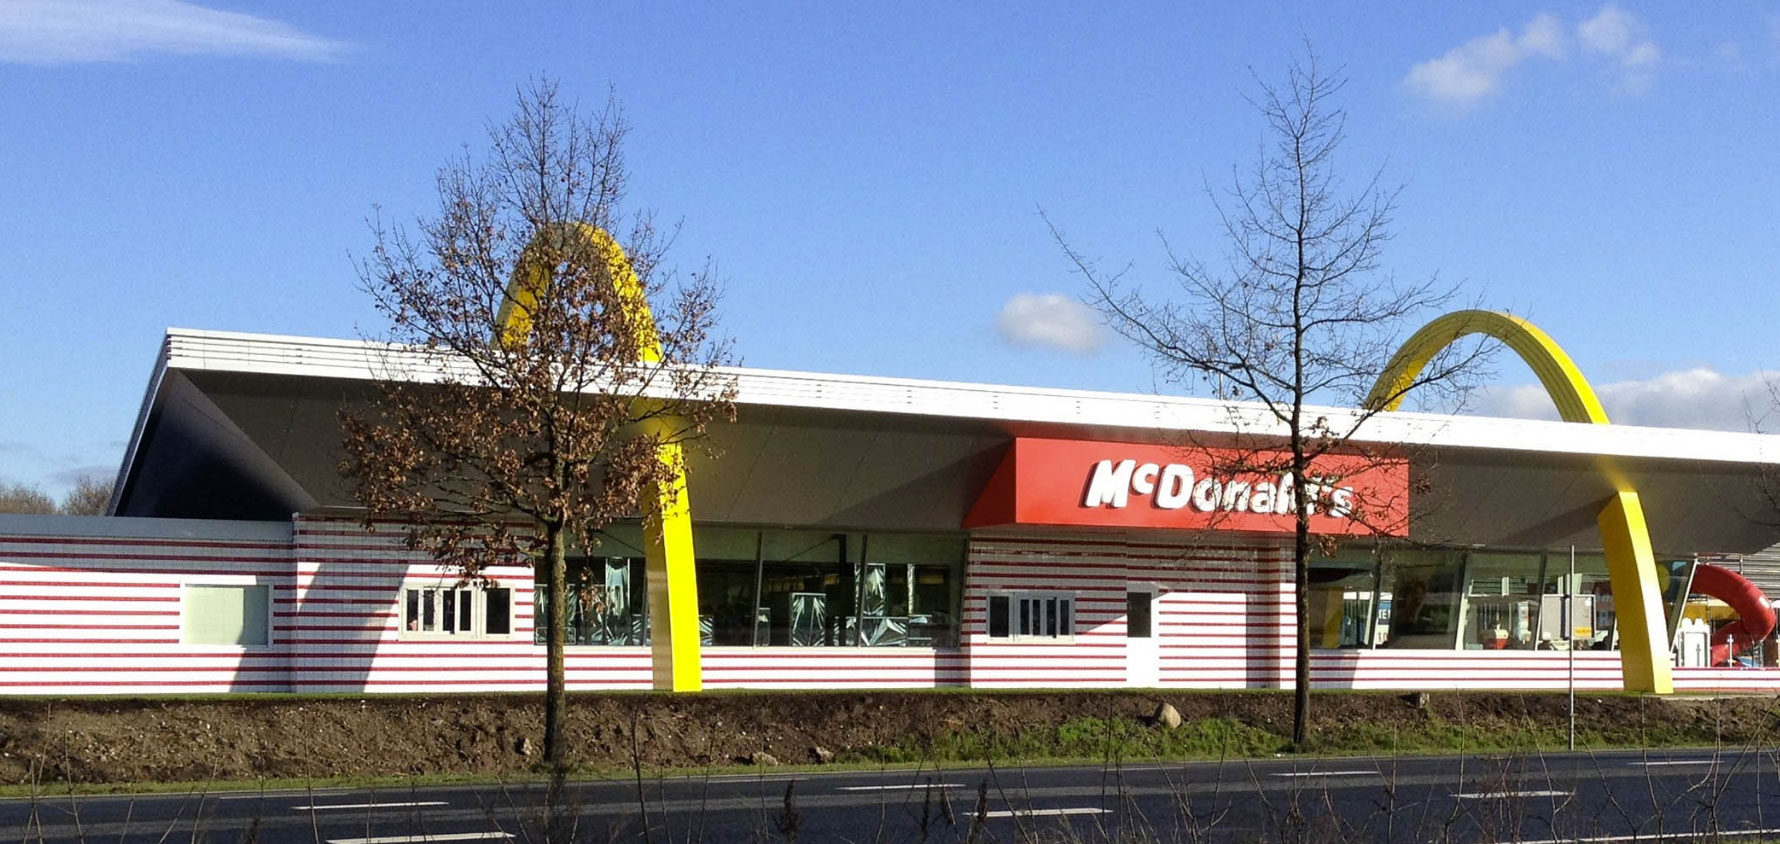 Netherlands Mcdonald S Best Debuts Iconic Retro Style With Alucobond Acm Exterior